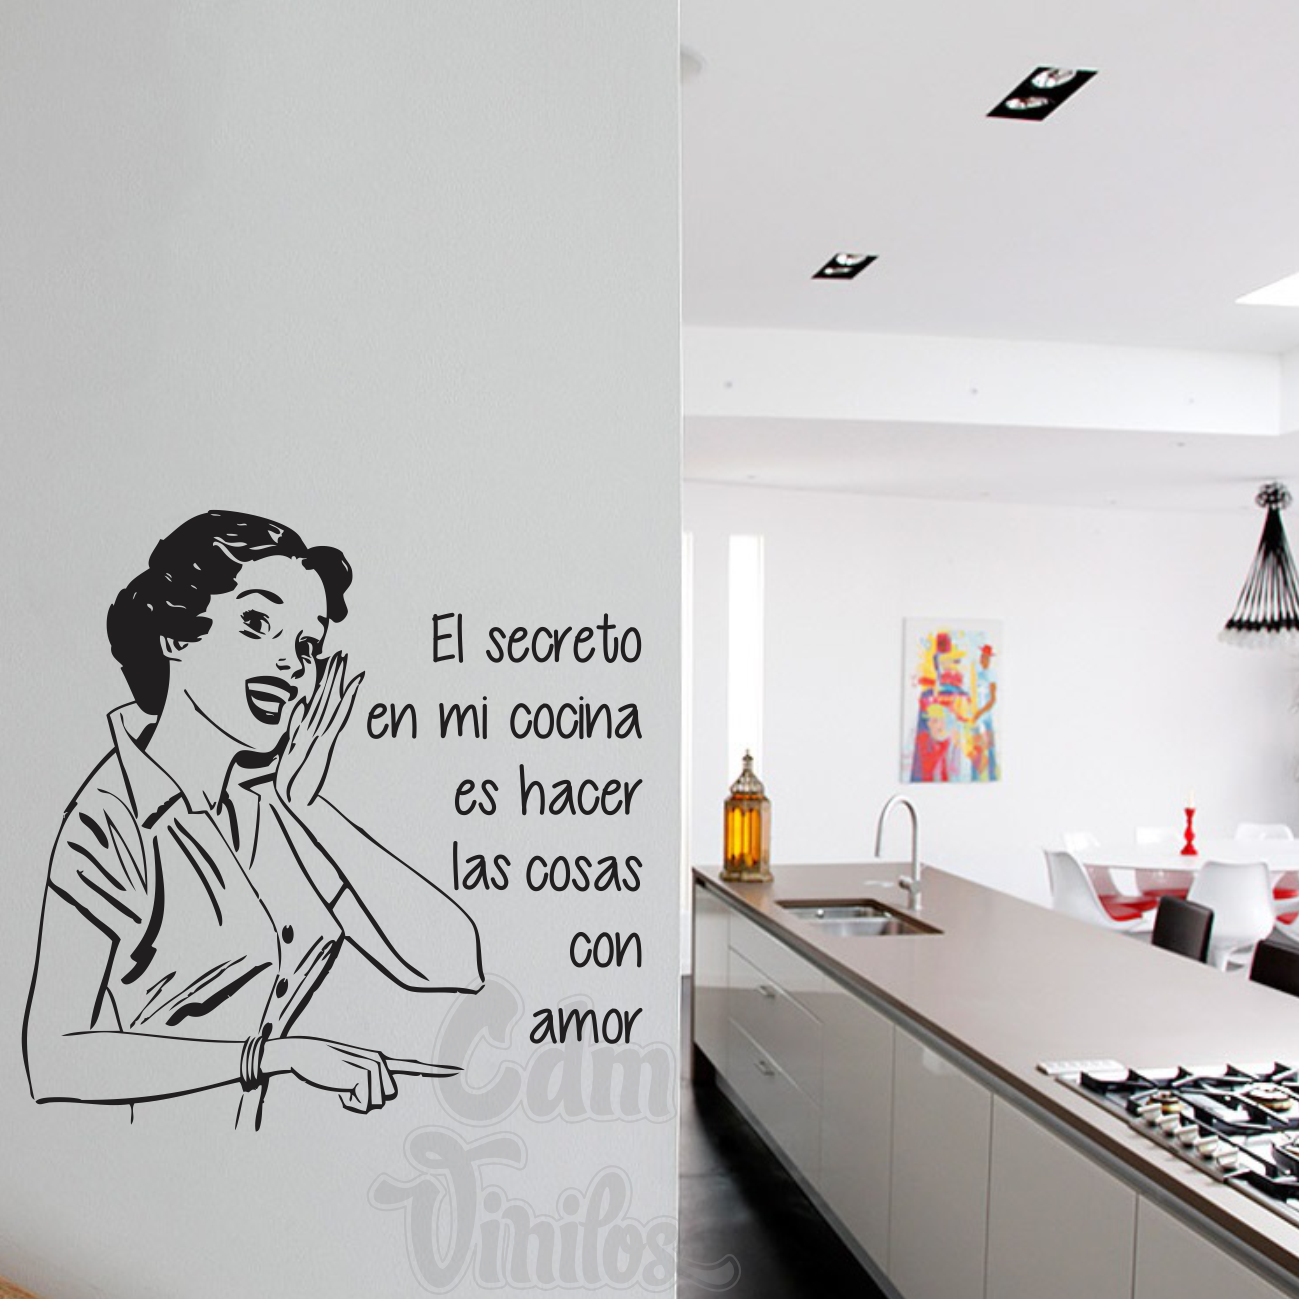 Vinilo Decorativo Pared Vinilo Decorativo Cocina Secreto Pared Retro Mujer Resto